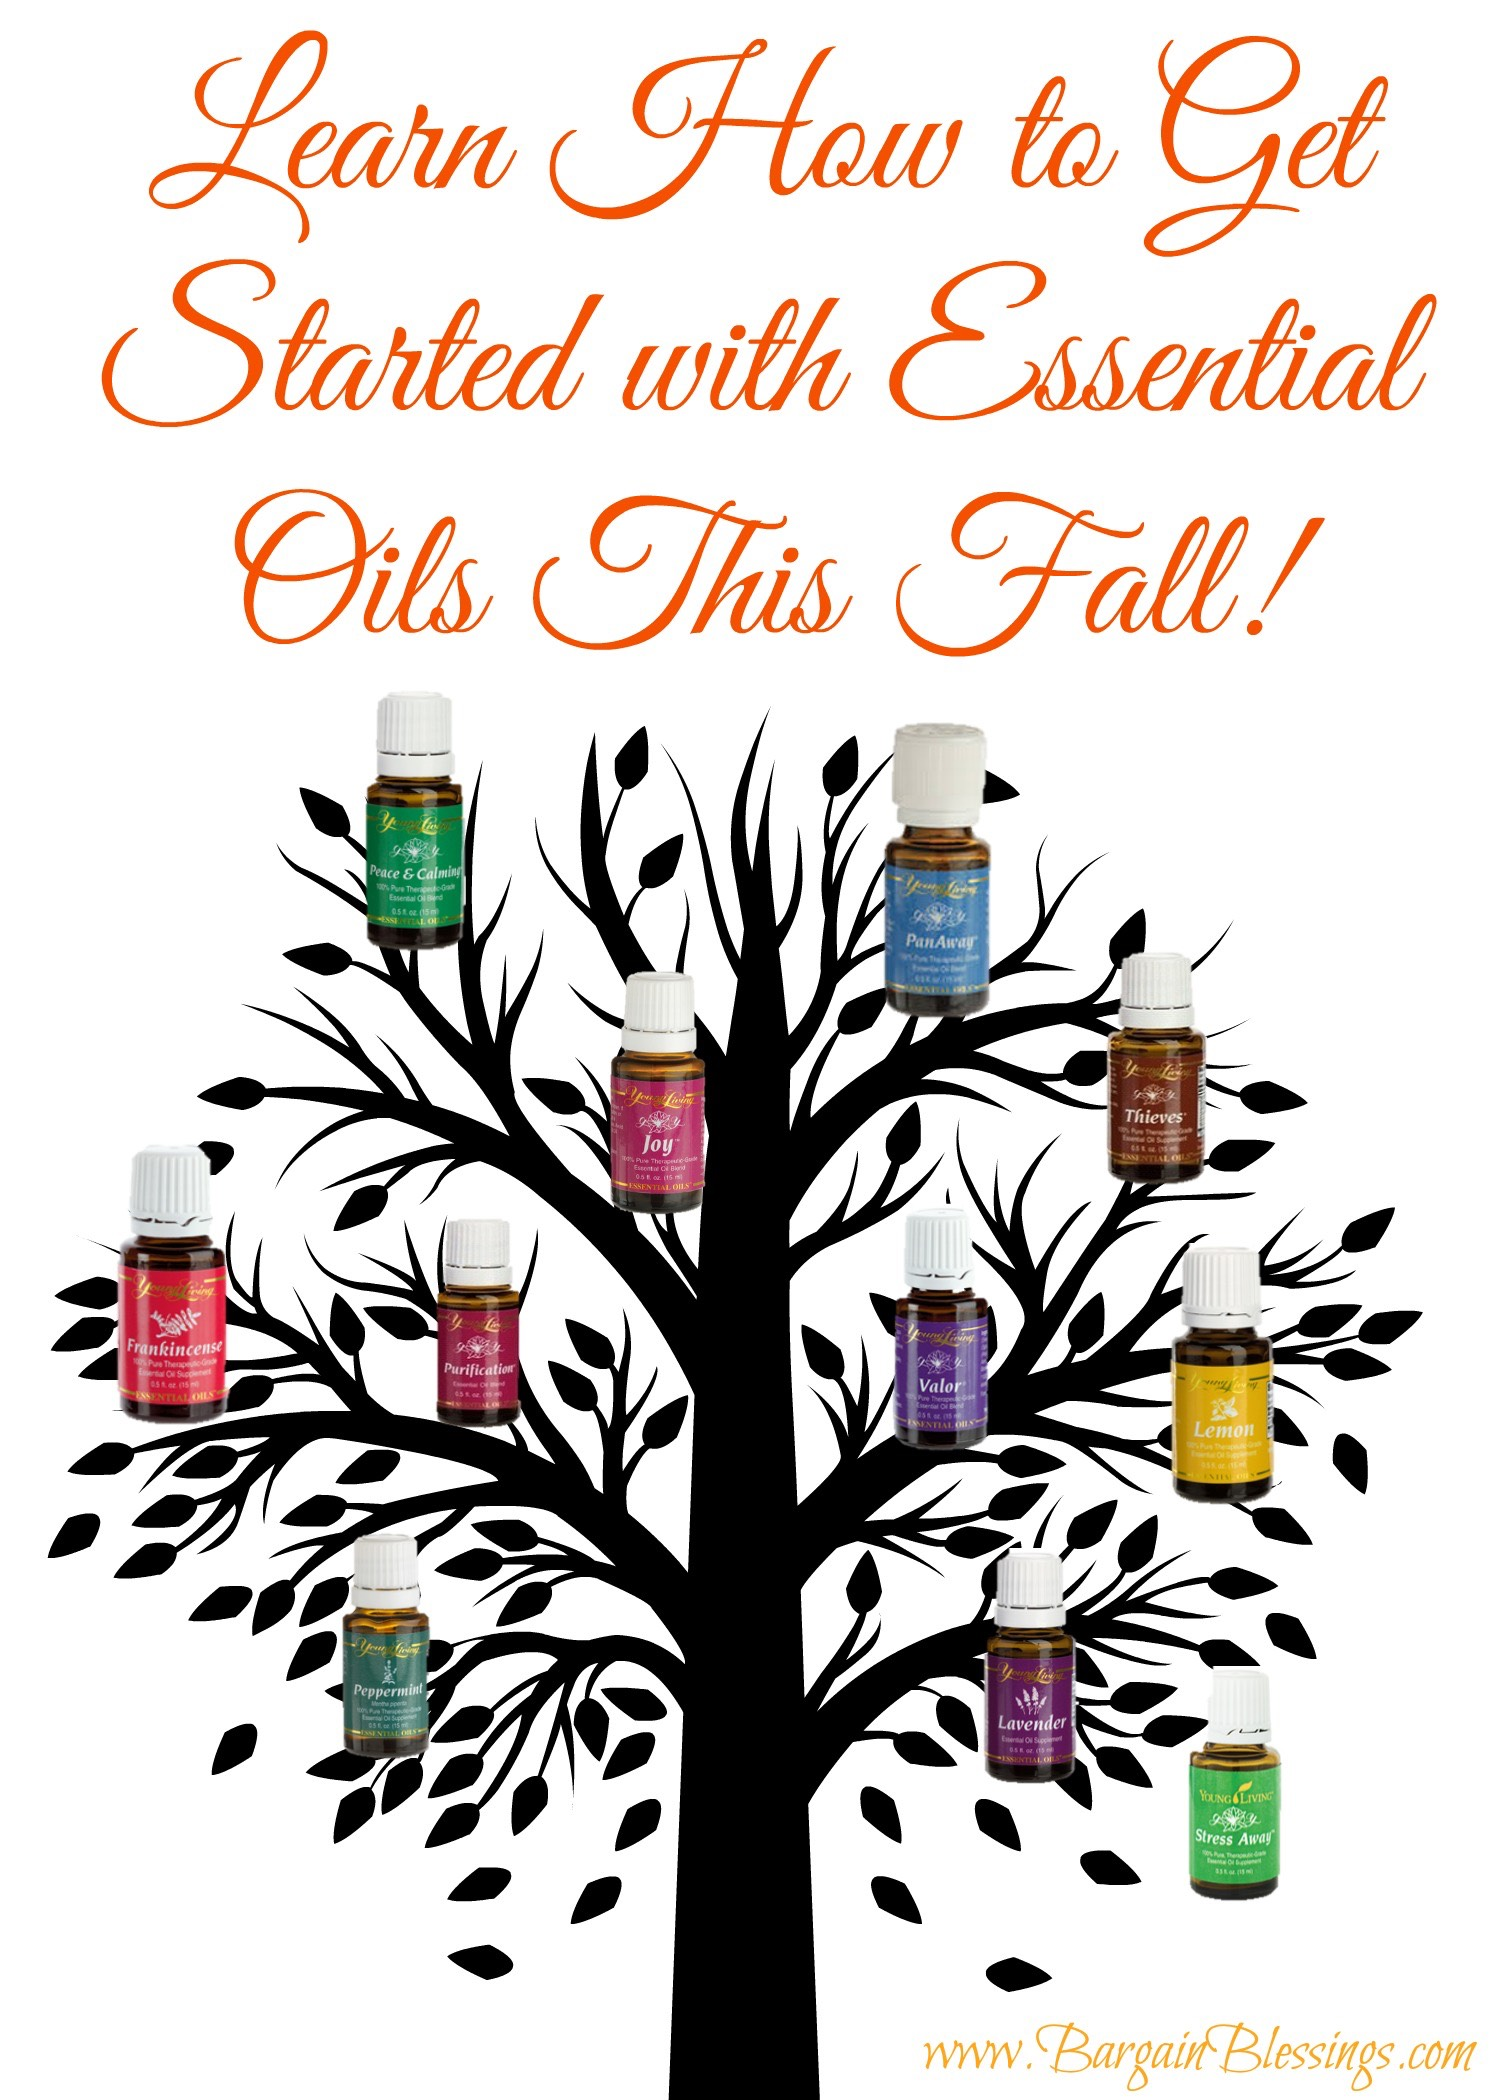 get-started-with-essential-oils-this fall